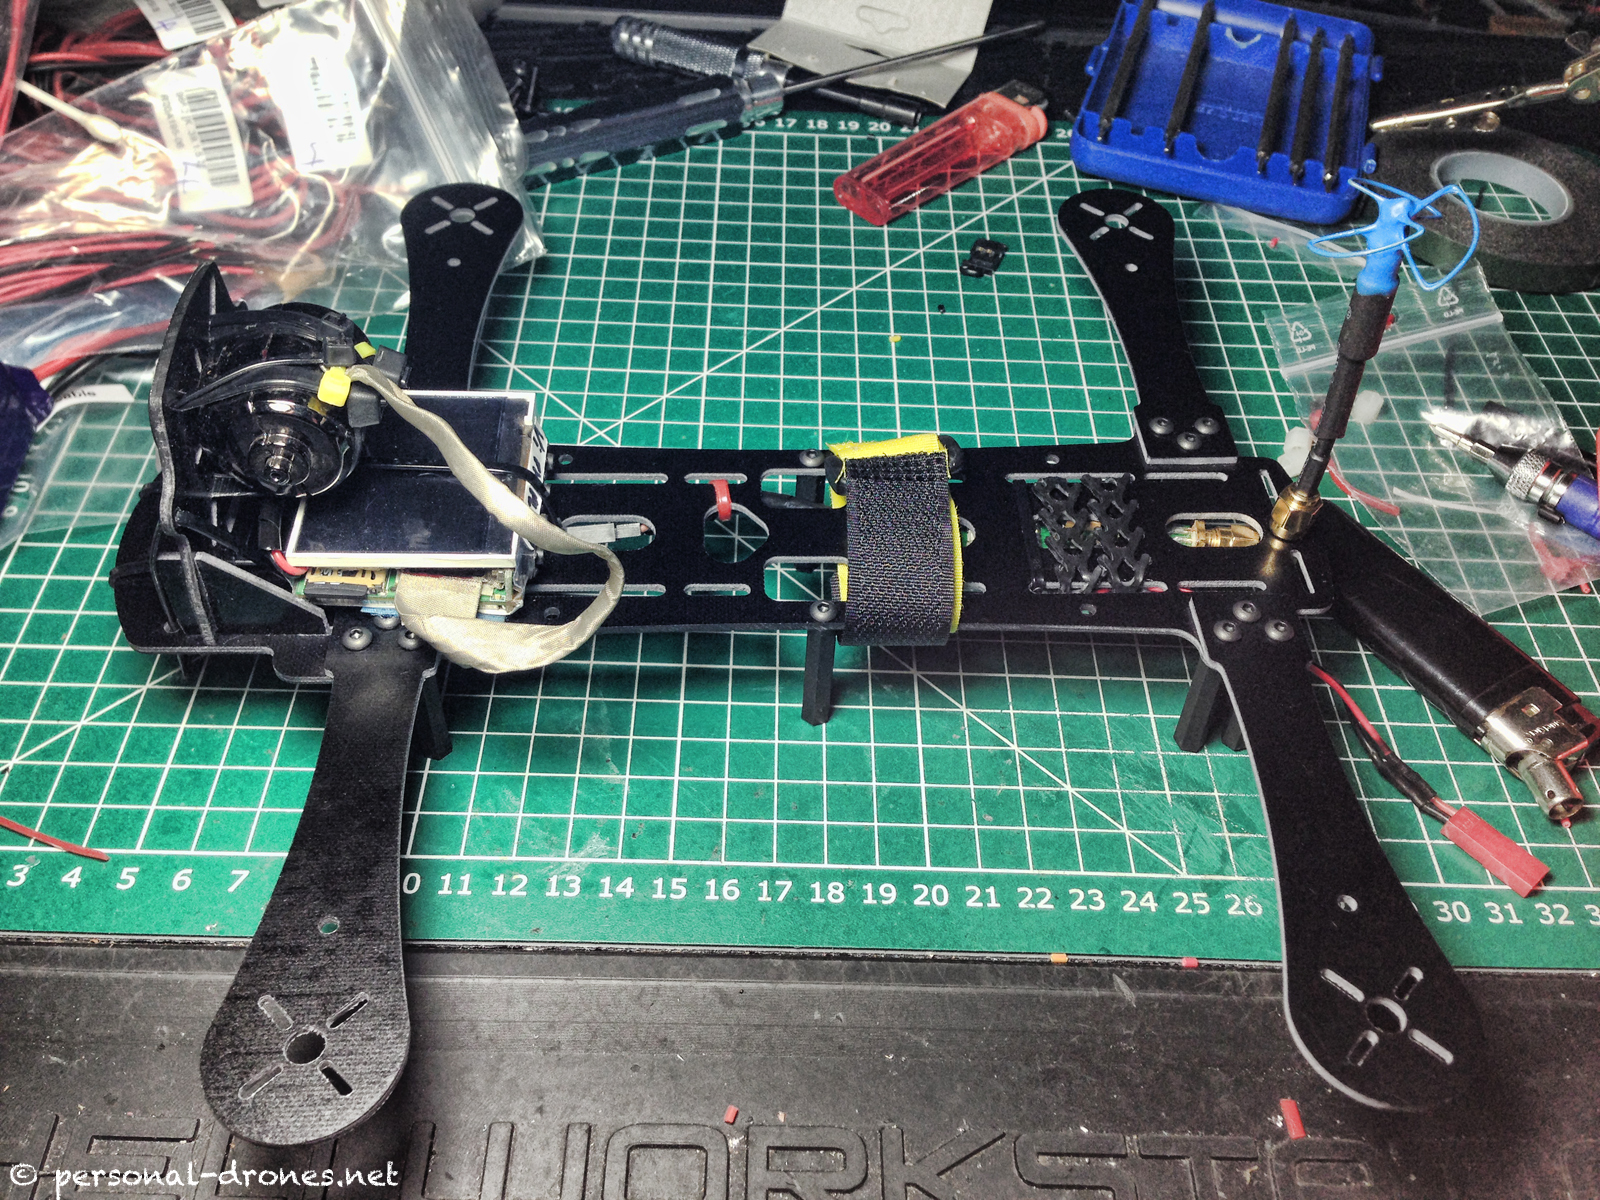 FlyXcopter FPV system self contained in the upper plate of the frame. Top view.